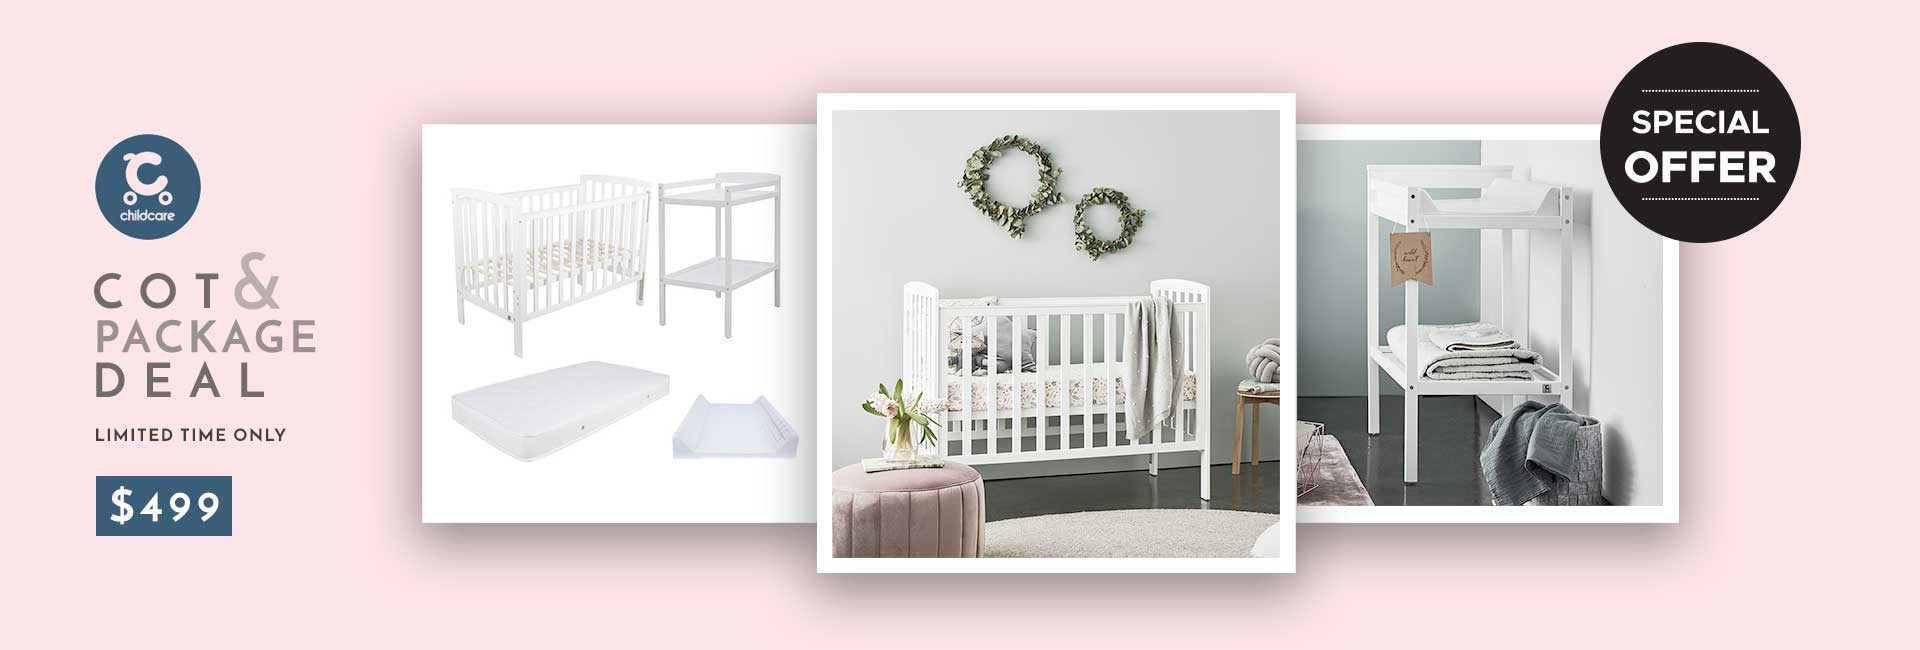 childcare cot package deal